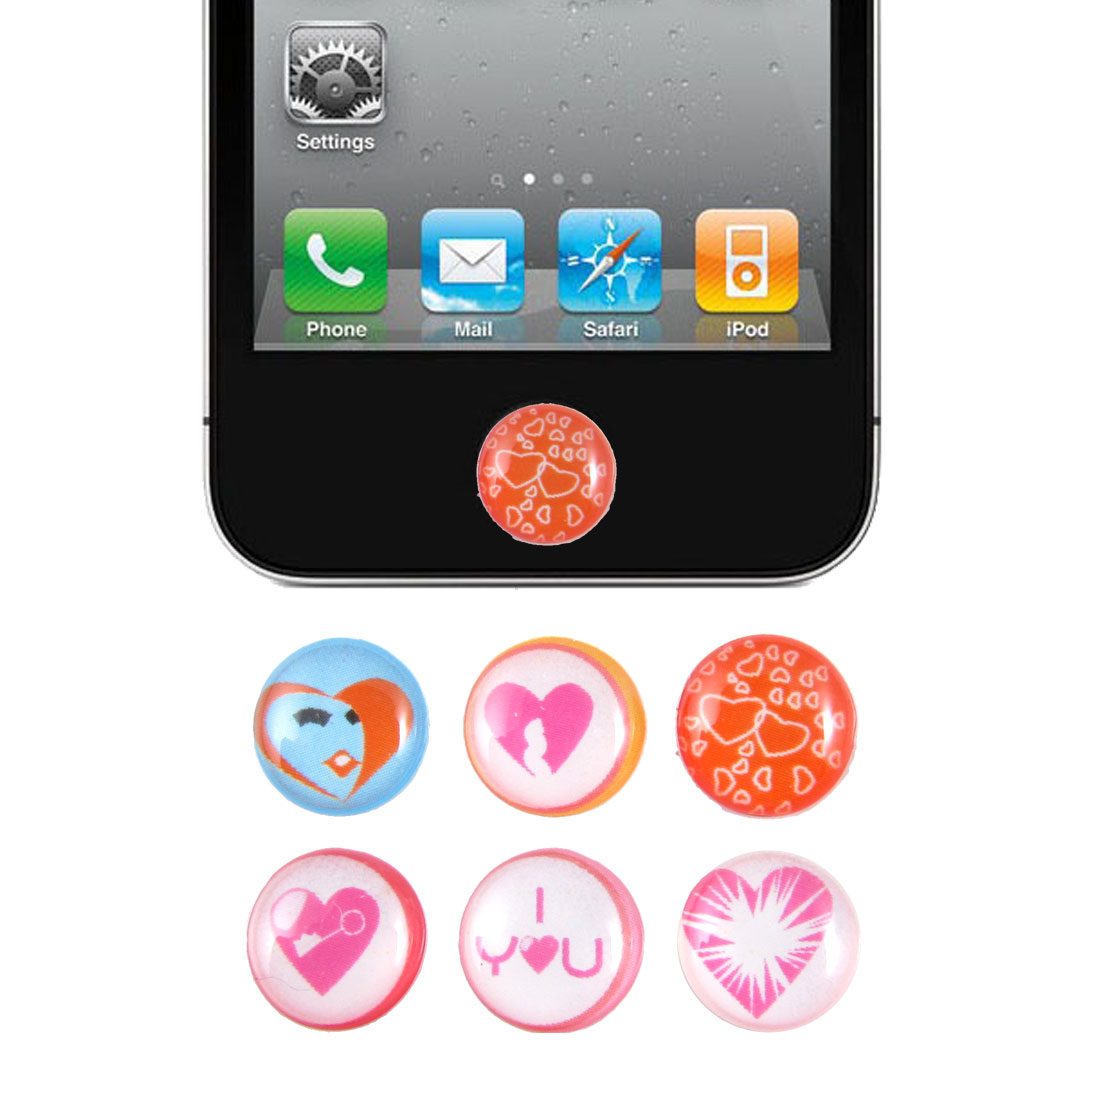 Heart Love Home Button Stickers 6 in 1 for iPhone 4 4G 4S 4GS 5 5G 5th Gen